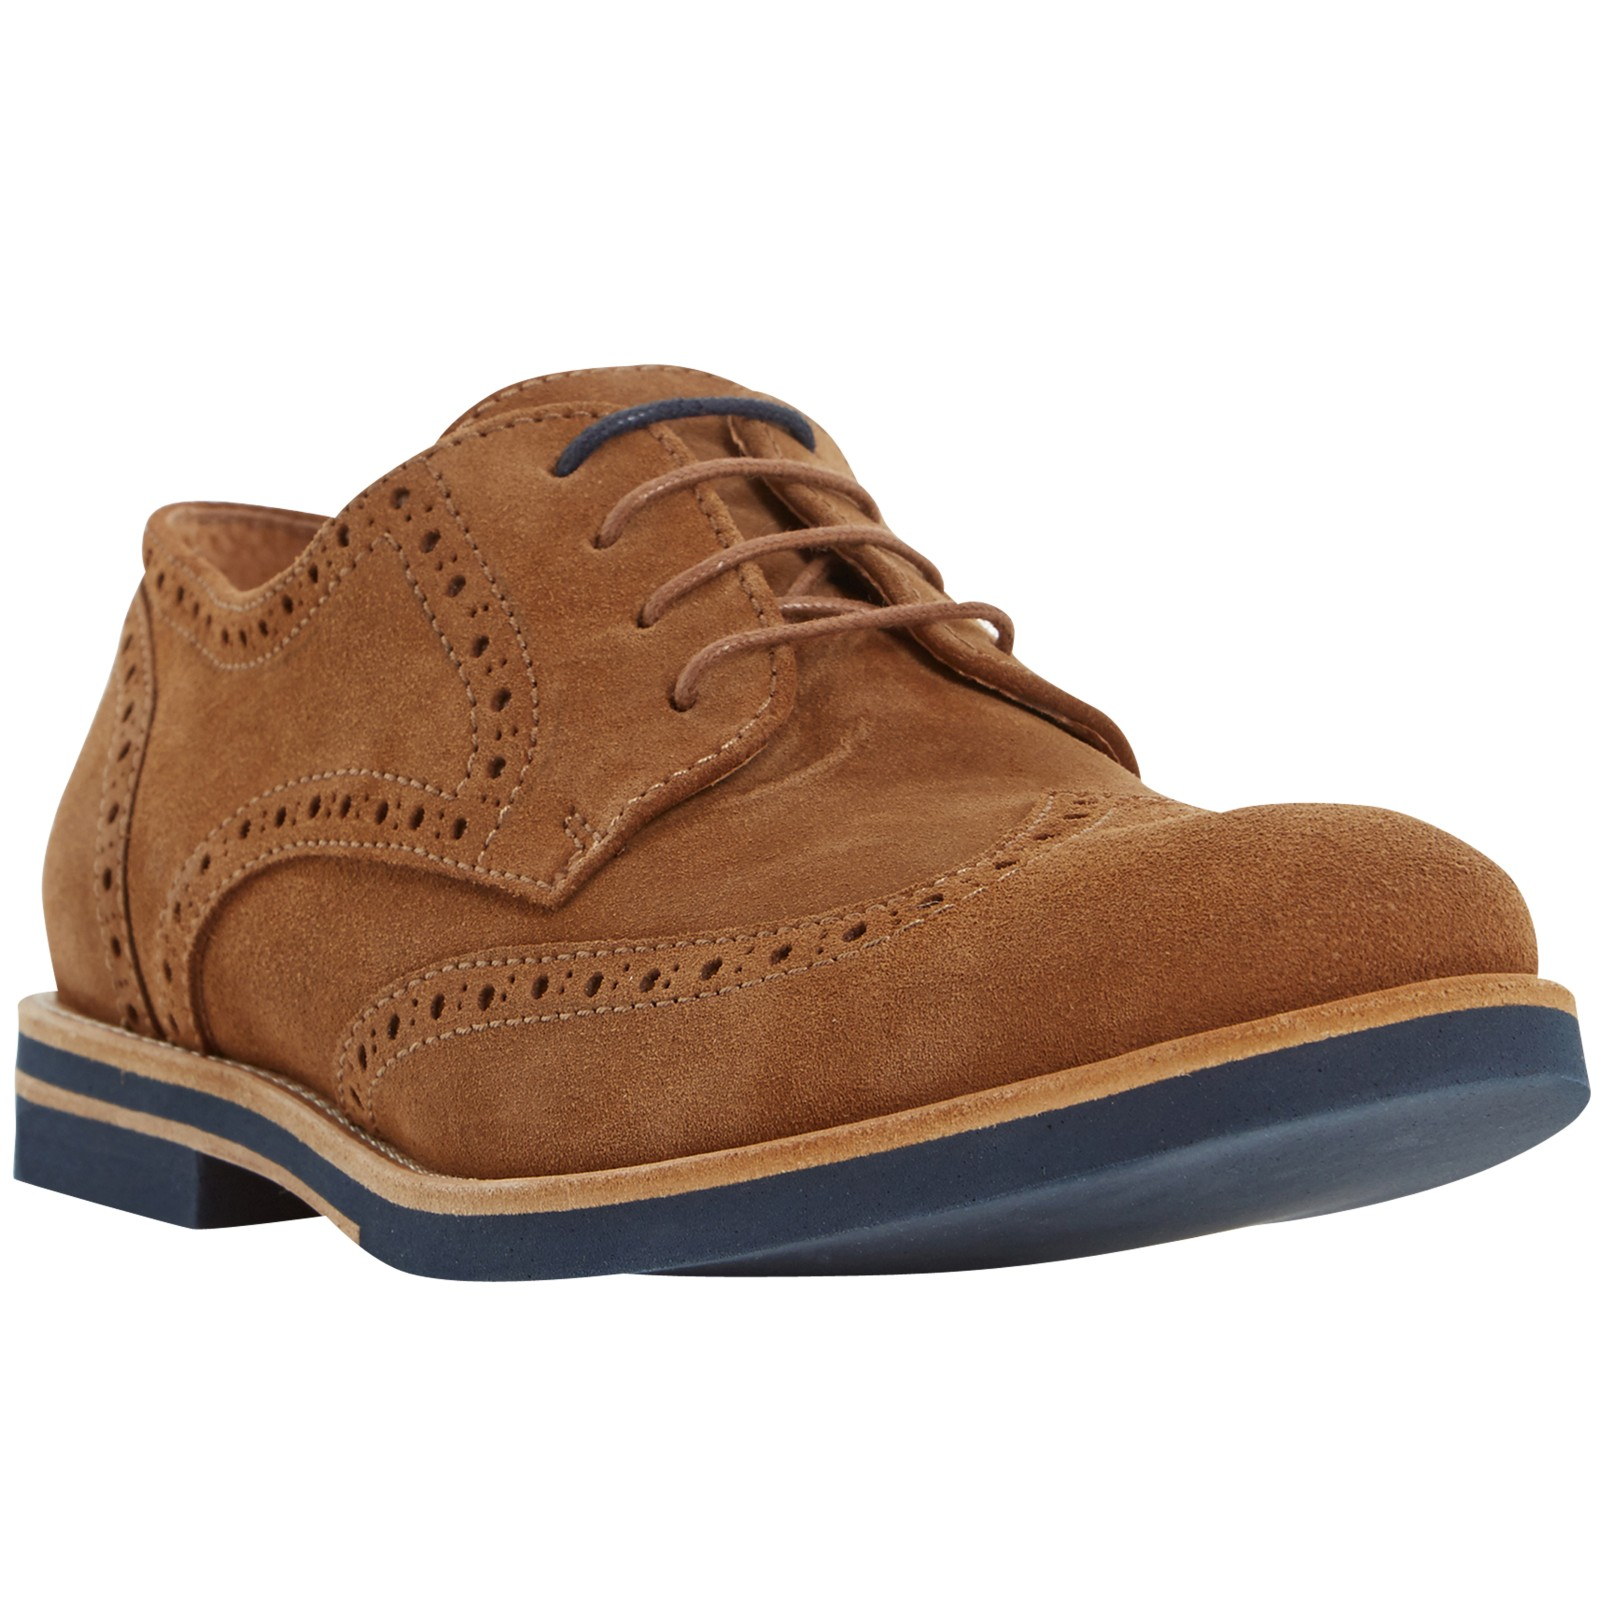 Dune Suede Benito Brogues for Men